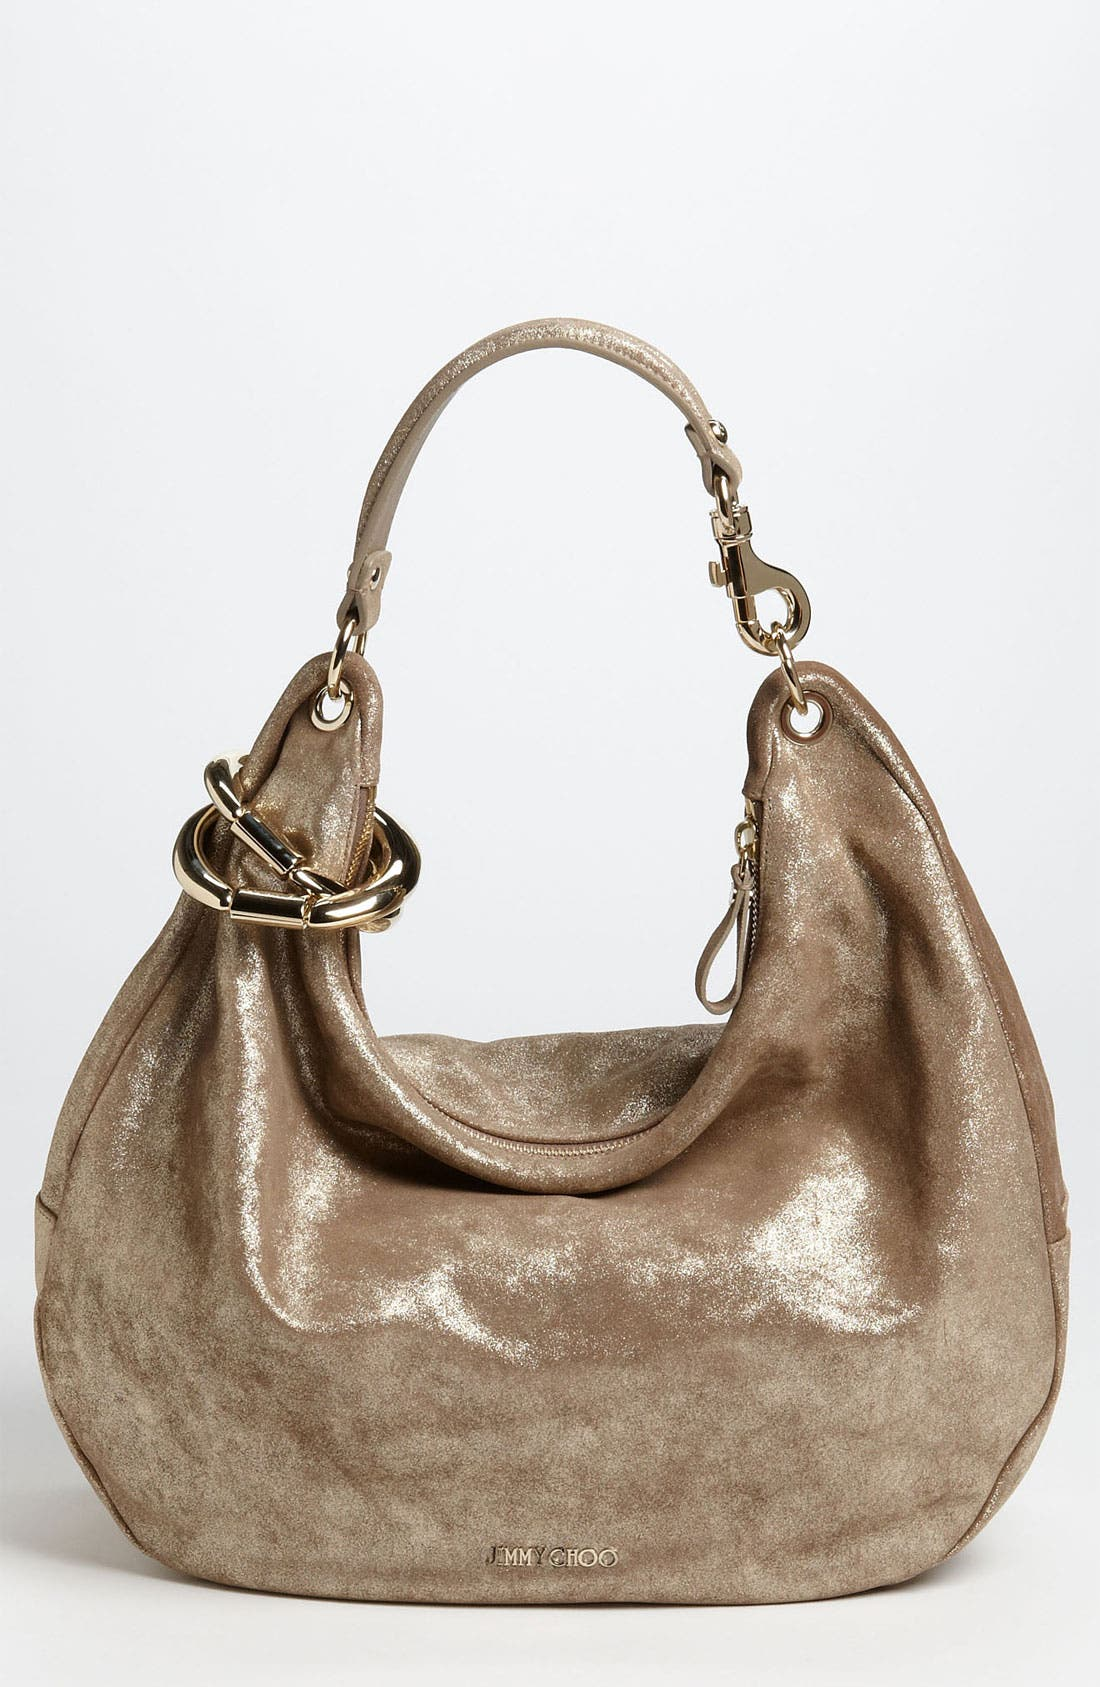 Alternate Image 1 Selected - Jimmy Choo 'Solar - Large' Metallic Leather Hobo